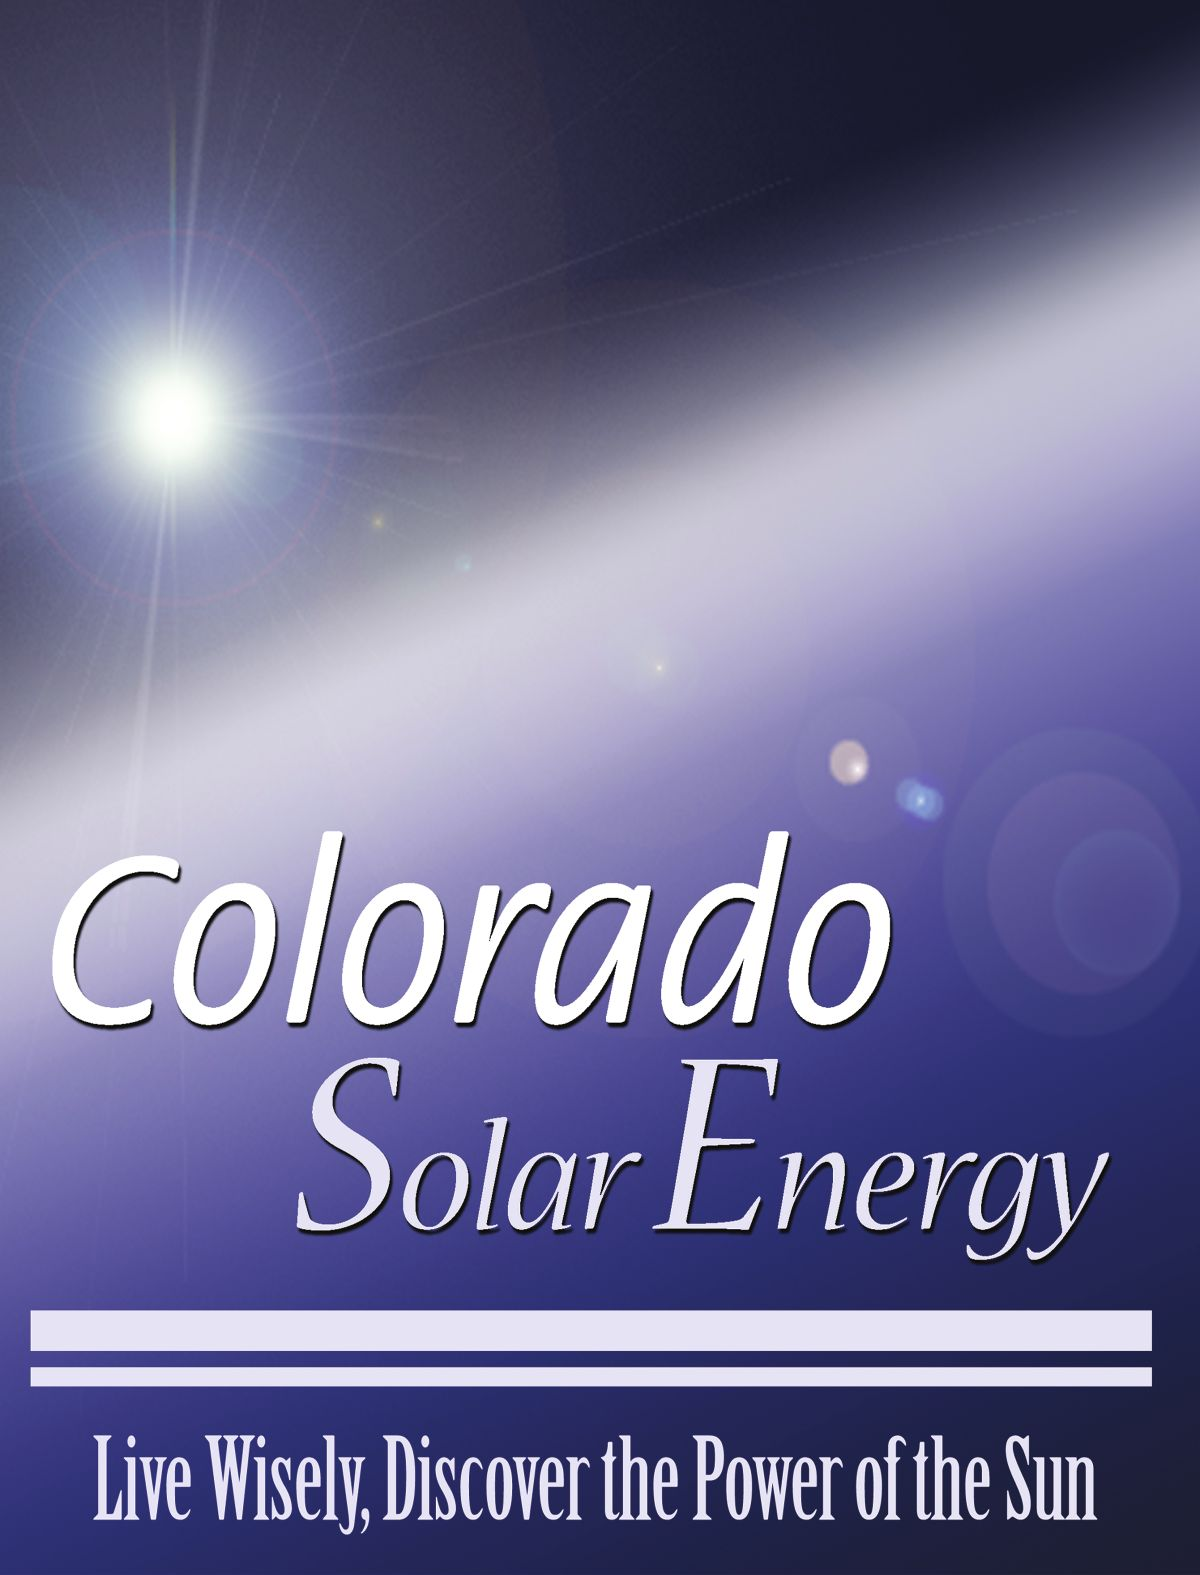 Colorado Solar Energy By Csolarenergy Issuu Dc Converter Further Circuits Gt 15w Inverter Circuit 12vdc To 120vac